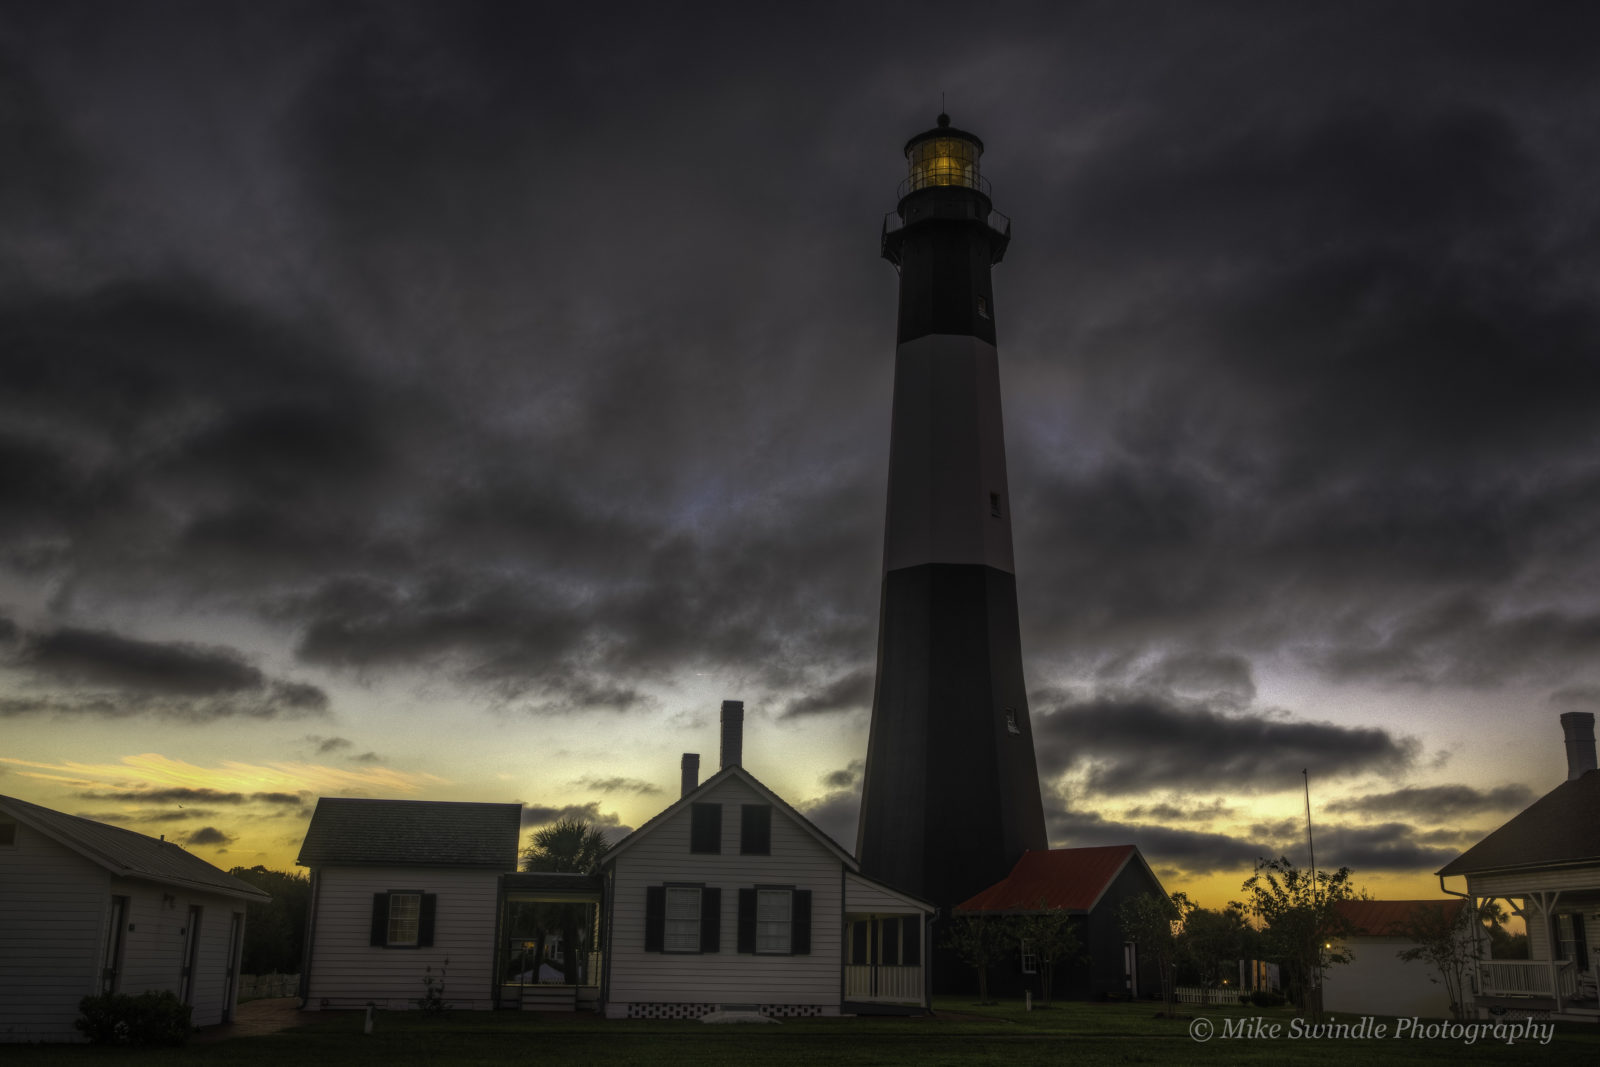 Storm clouds over lighthouse